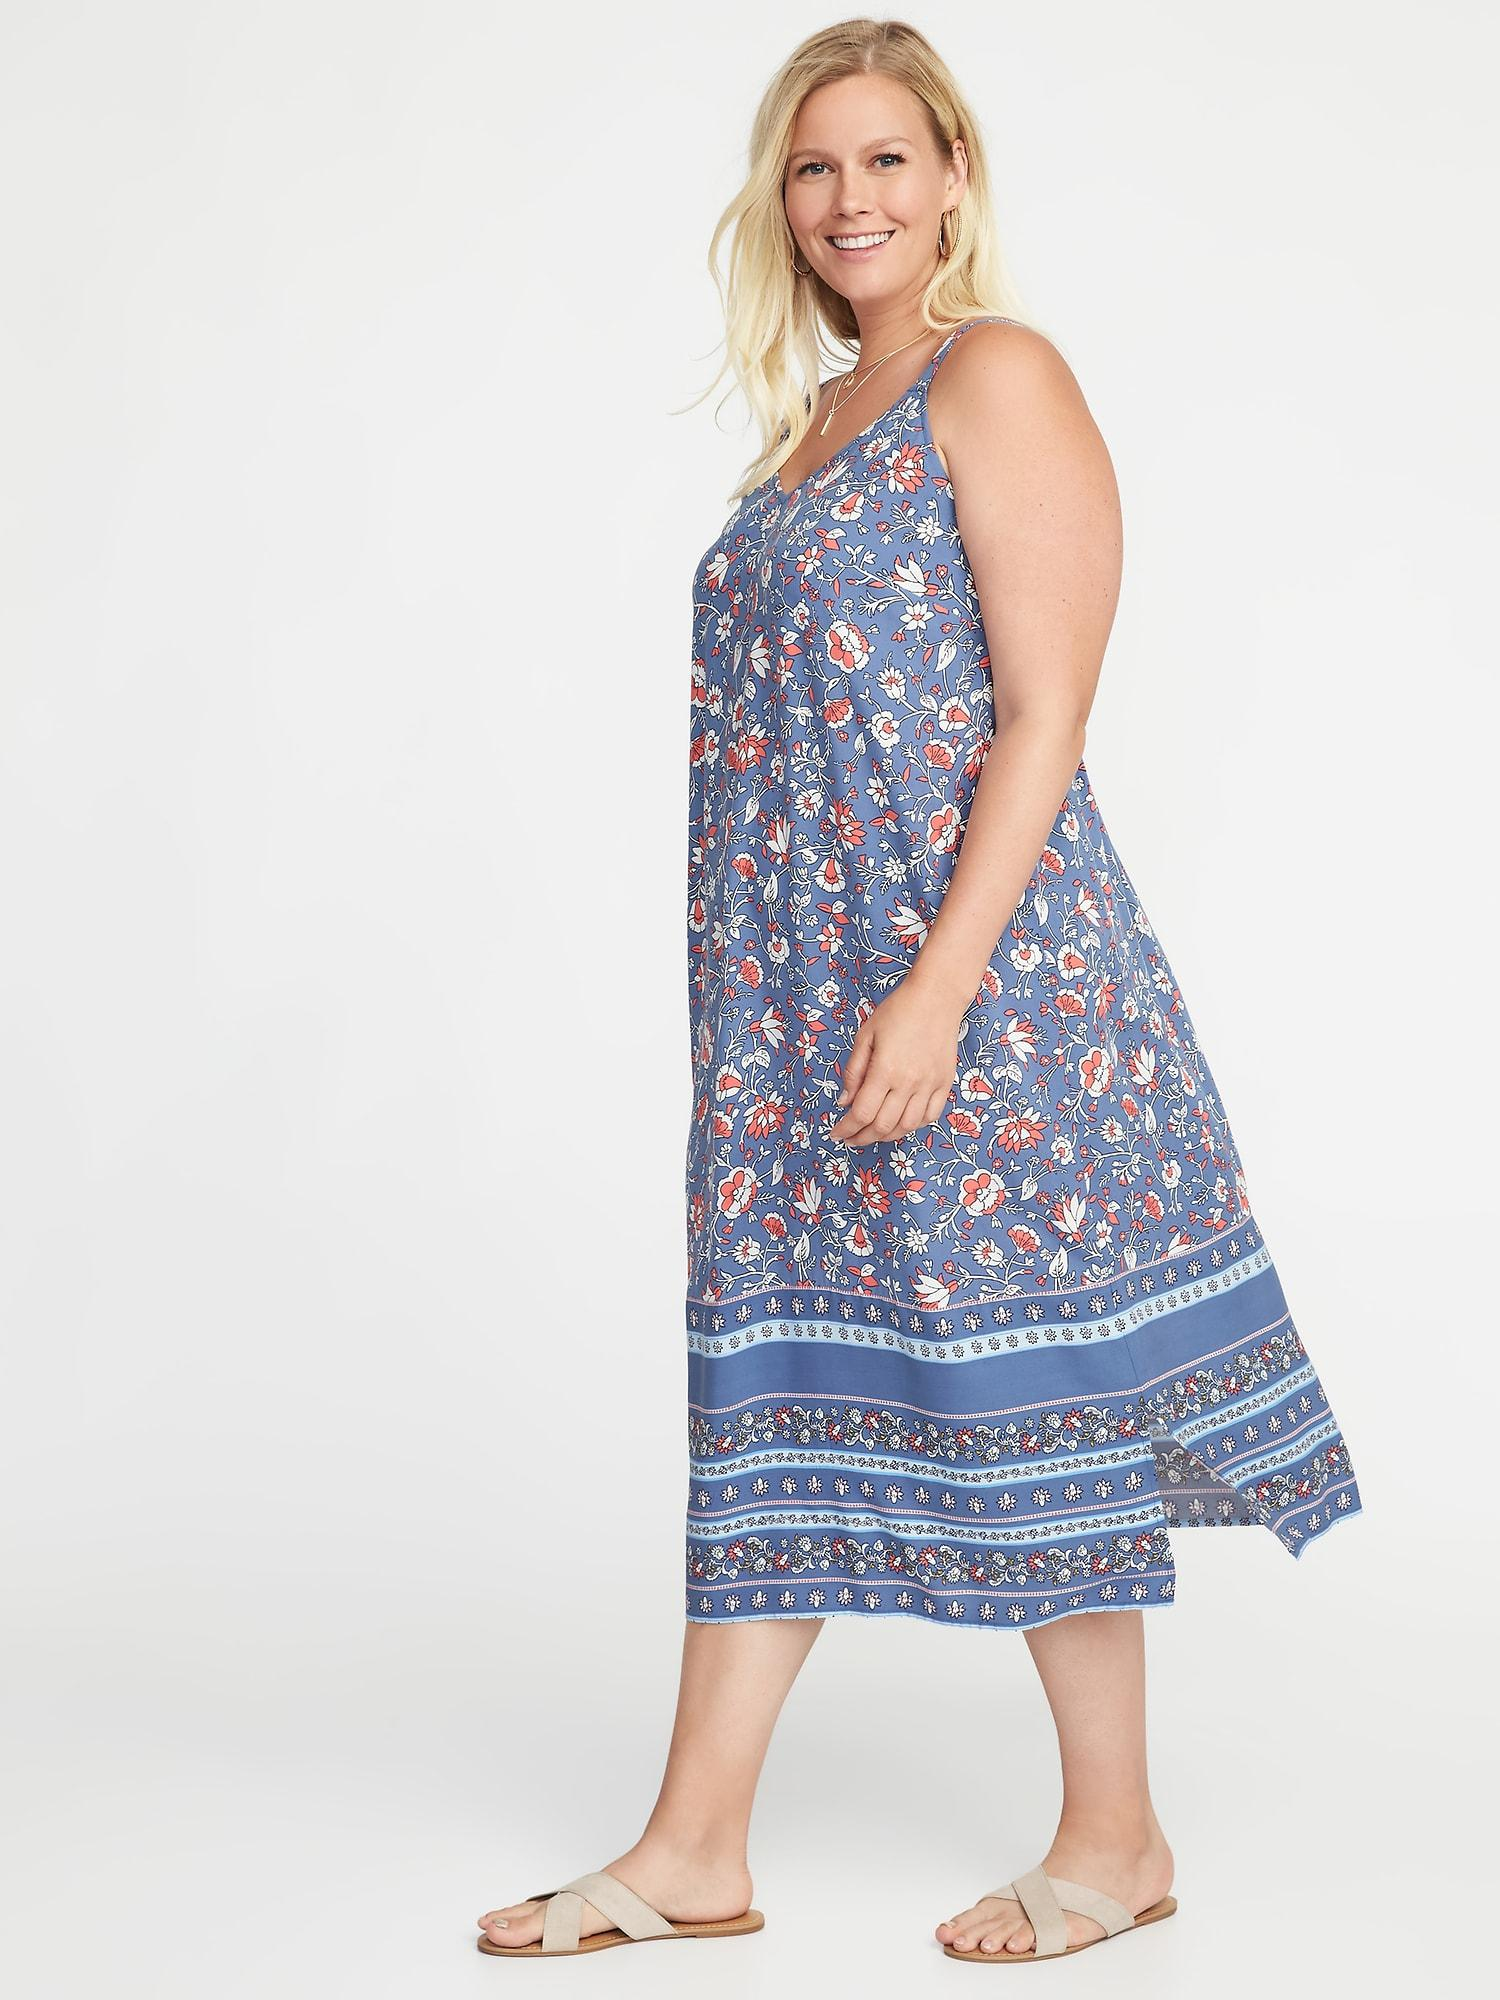 Maxi Dresses Old Navy | Huston Fislar Photography